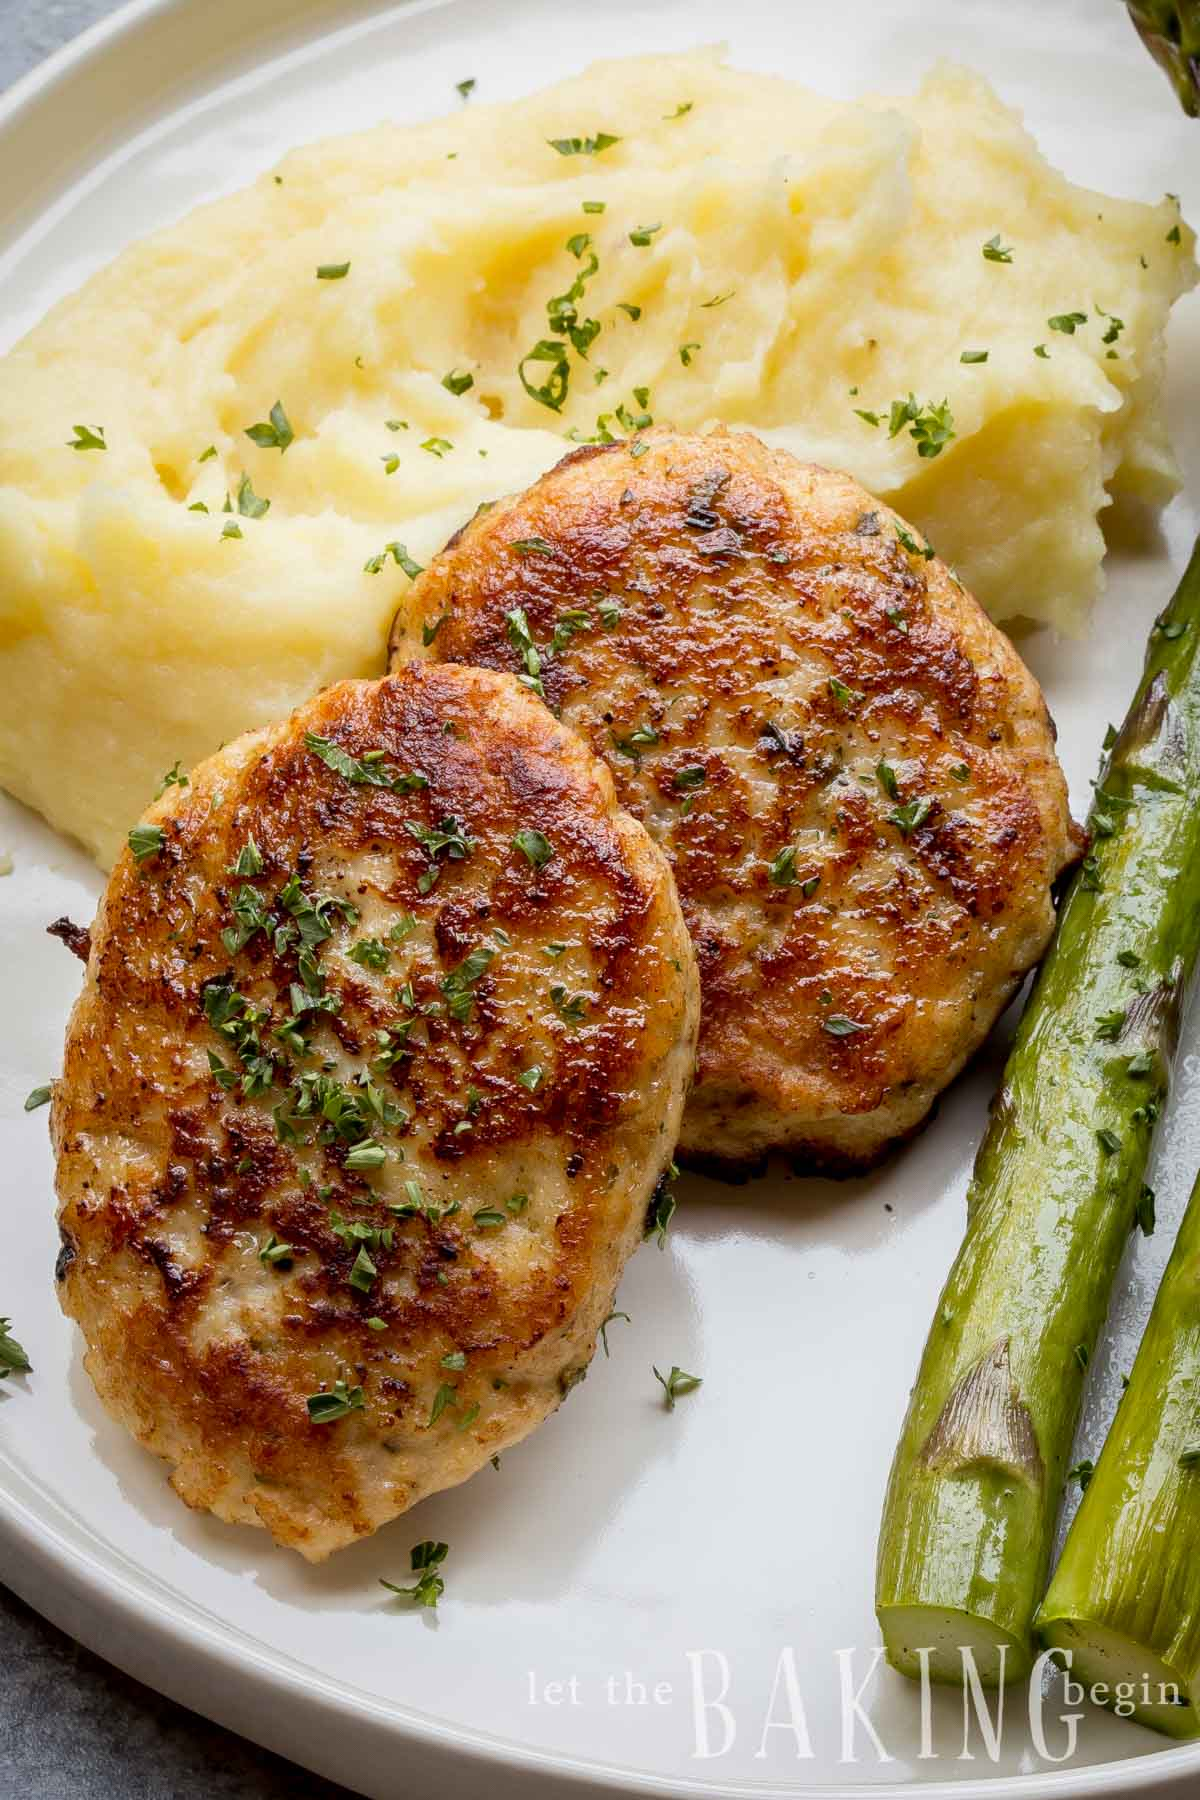 Homemade chicken sausage on a plate with mashed potatoes and asparagus.